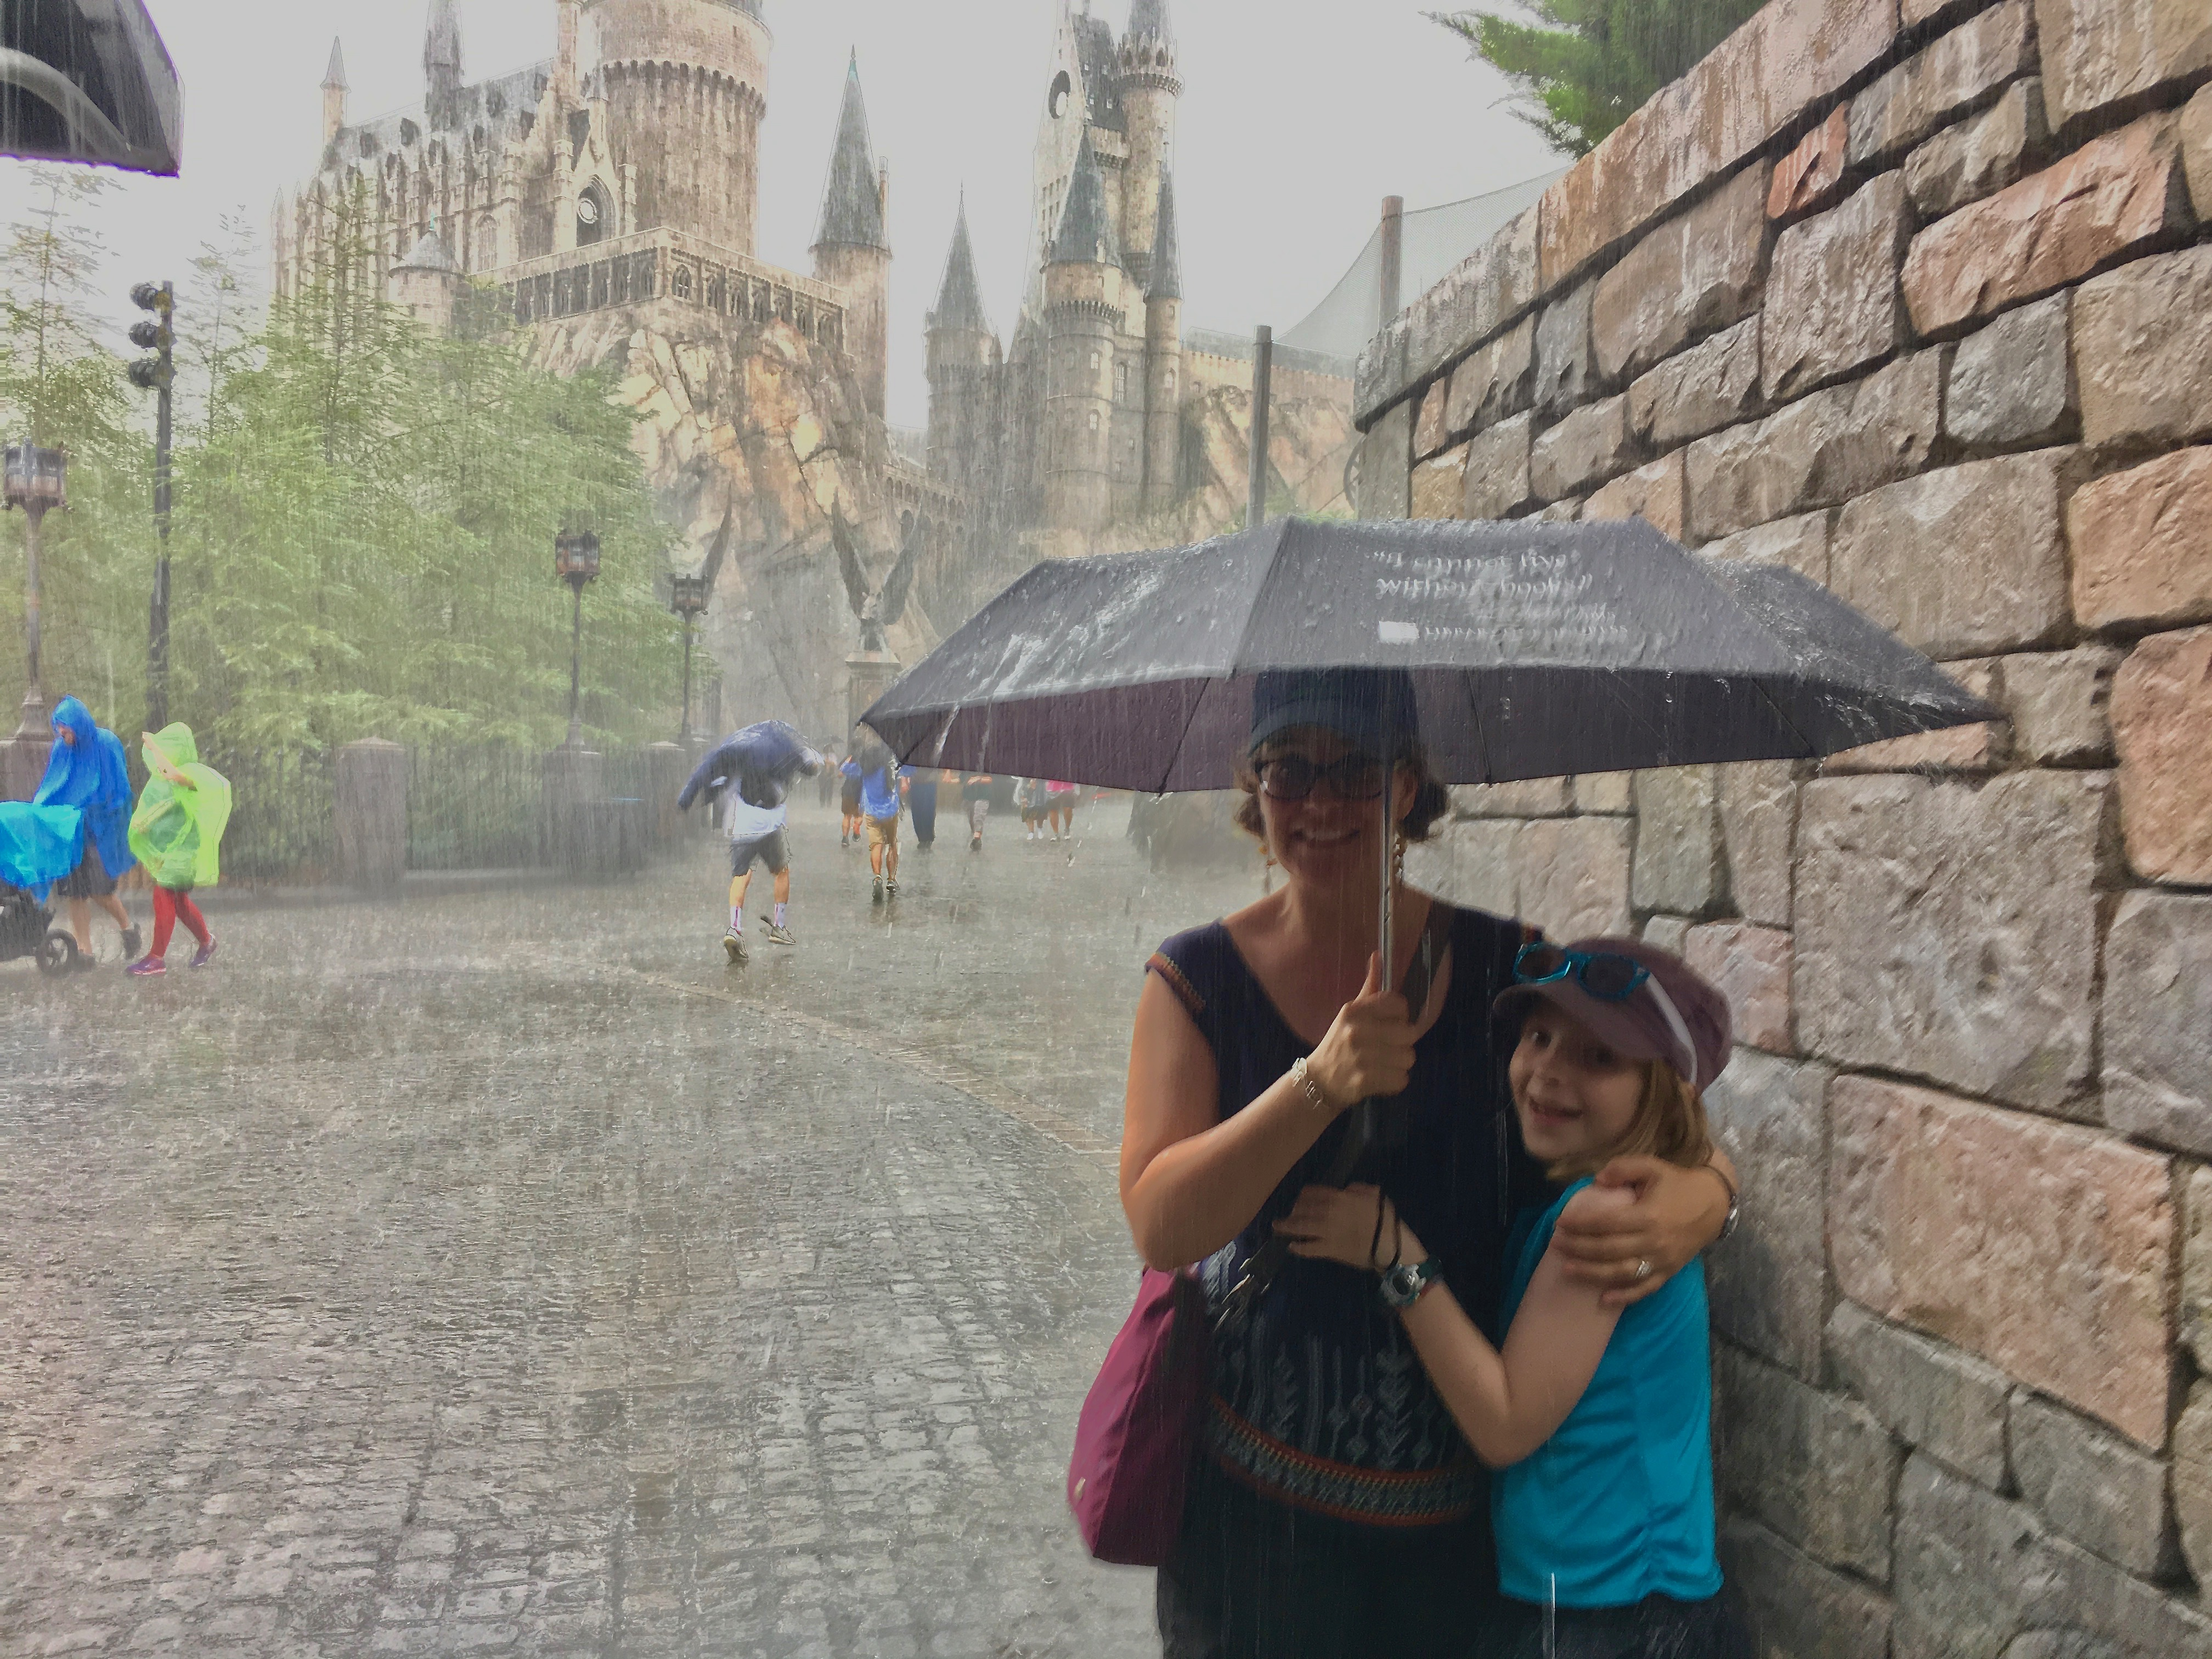 Cloud bursts greeted the Stanley family during their visit to Orlando, Florida.